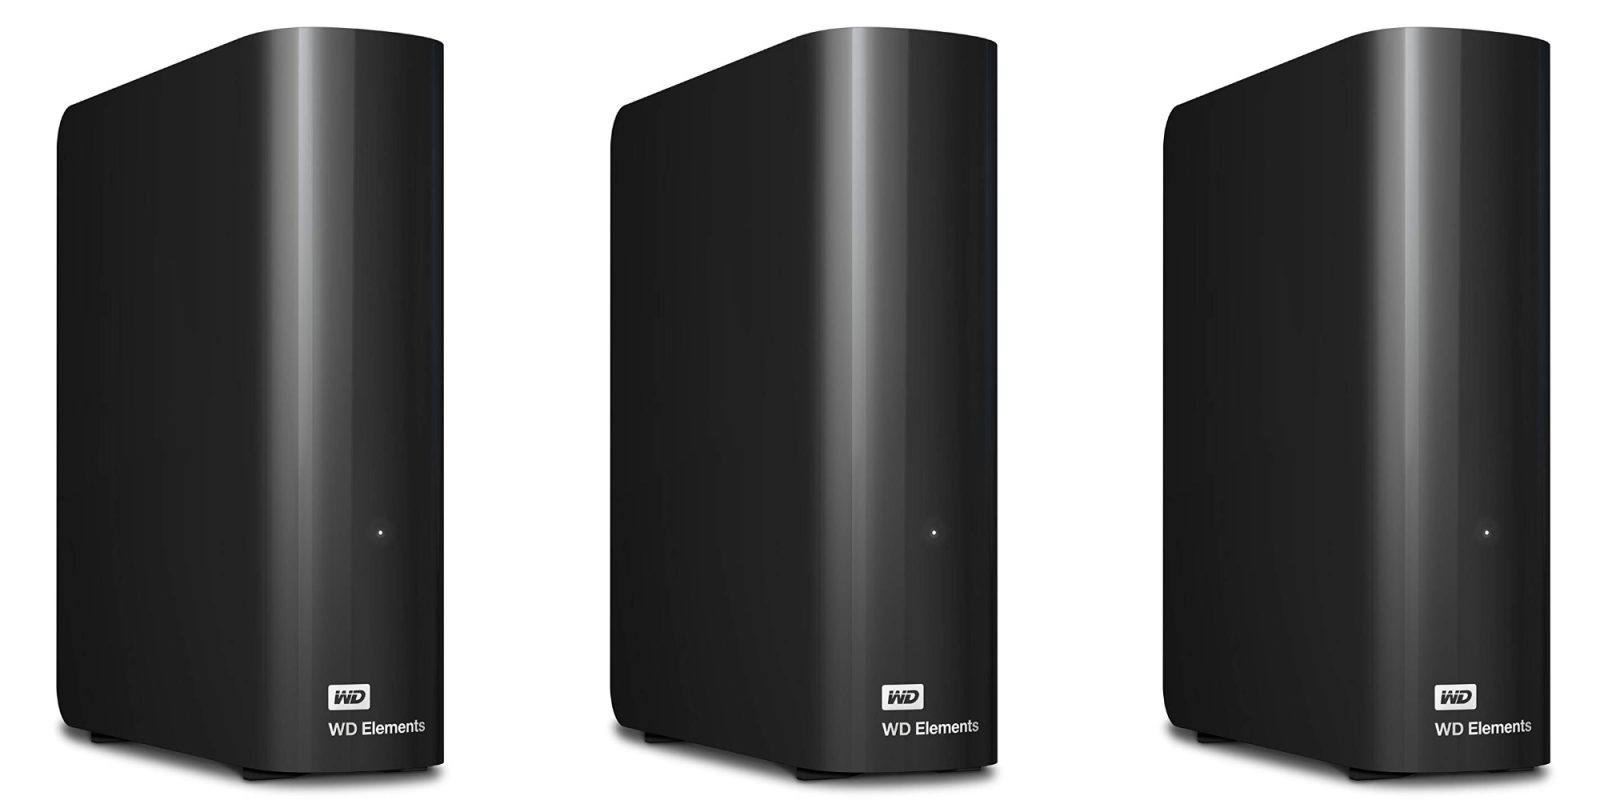 Expand your desktop's storage with WD's 10TB USB 3.0 HDD: $159 (Reg. $200)